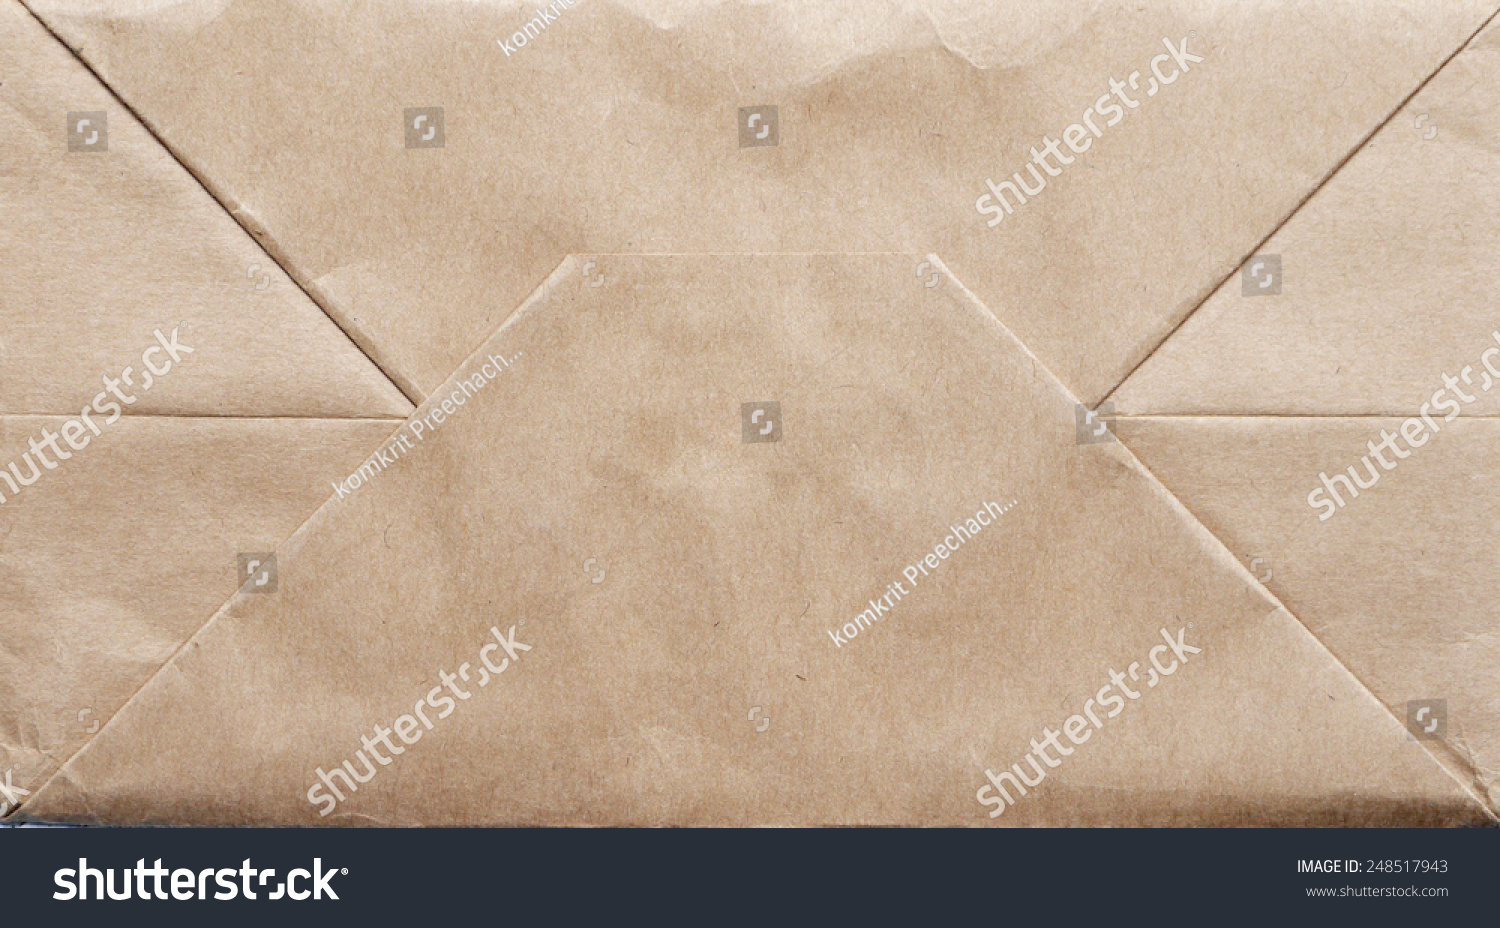 Brown Paper Bag Texture Stock Photo 248517943 - Shutterstock White Paper Bag Texture